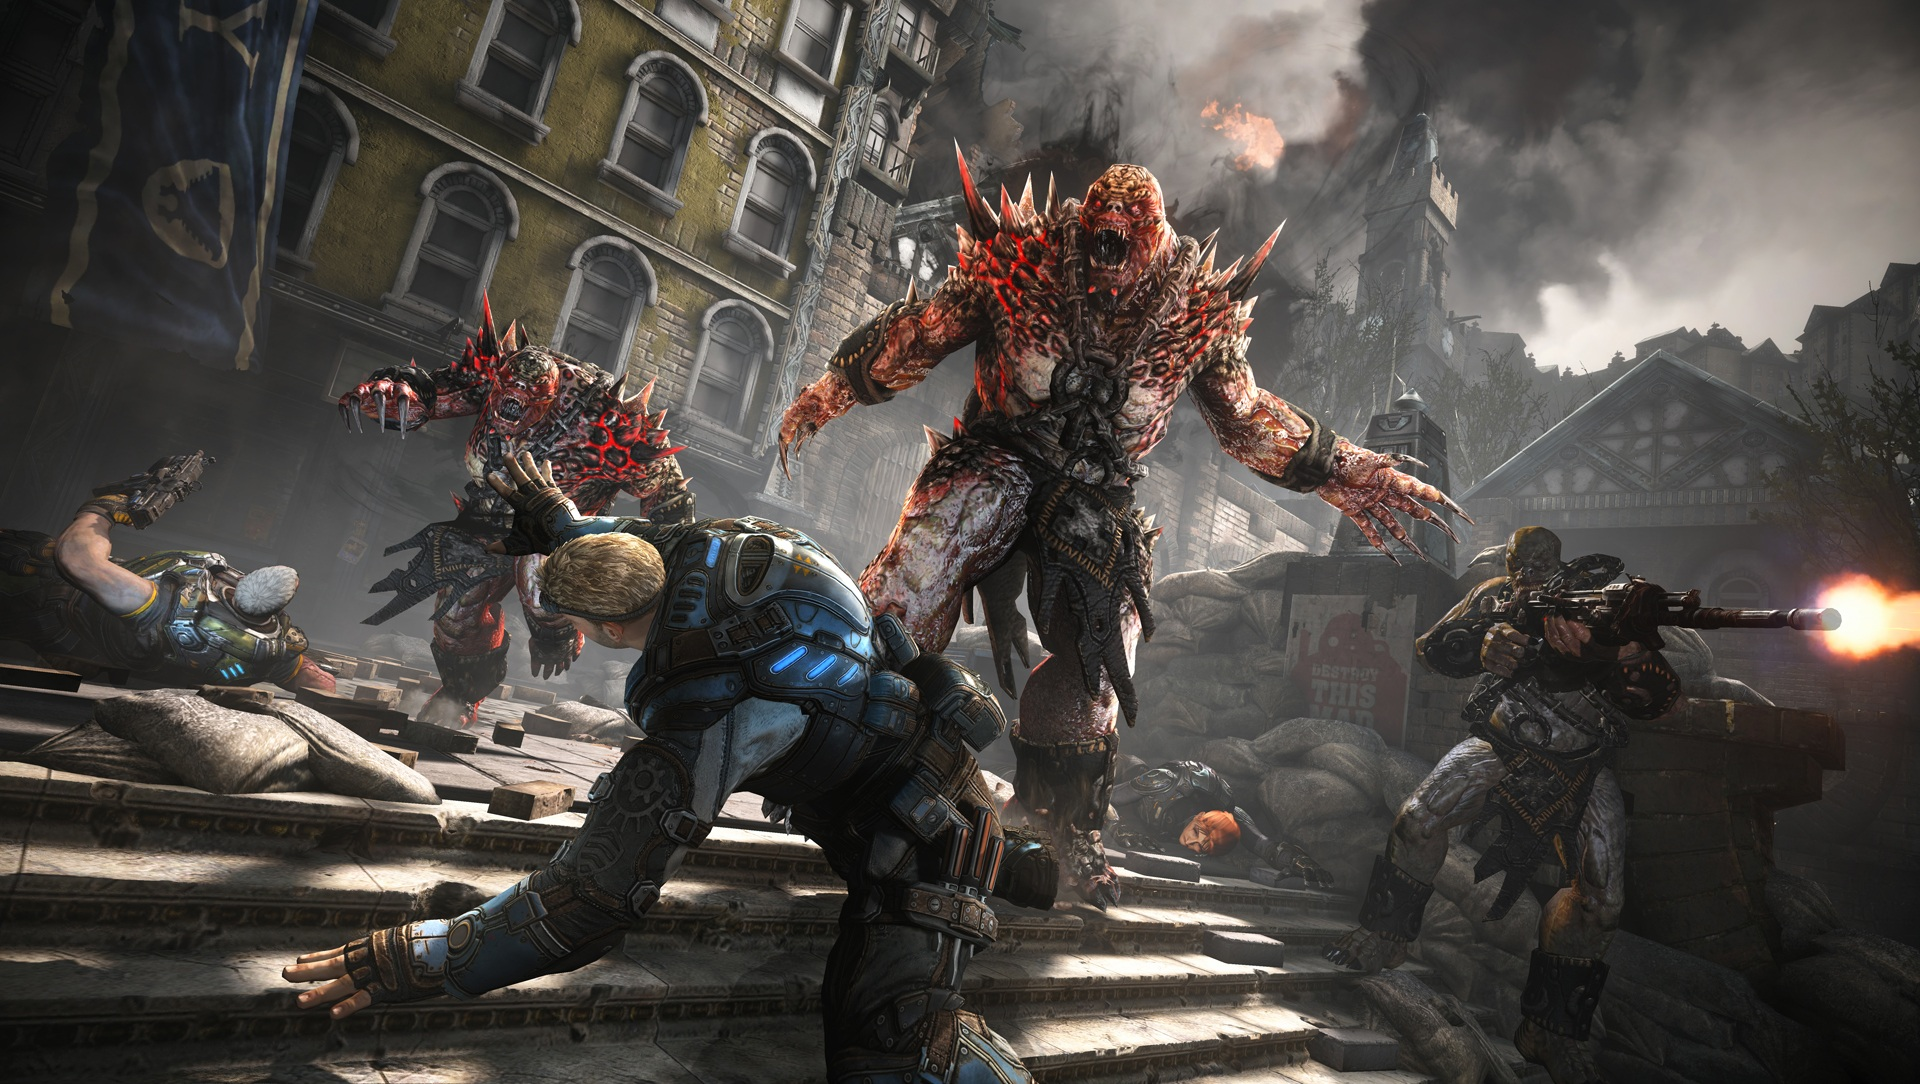 New Gears Of War 4 Footage Shows Off Brutal Knife Kill gears of war 4 pcre lehetseges 1